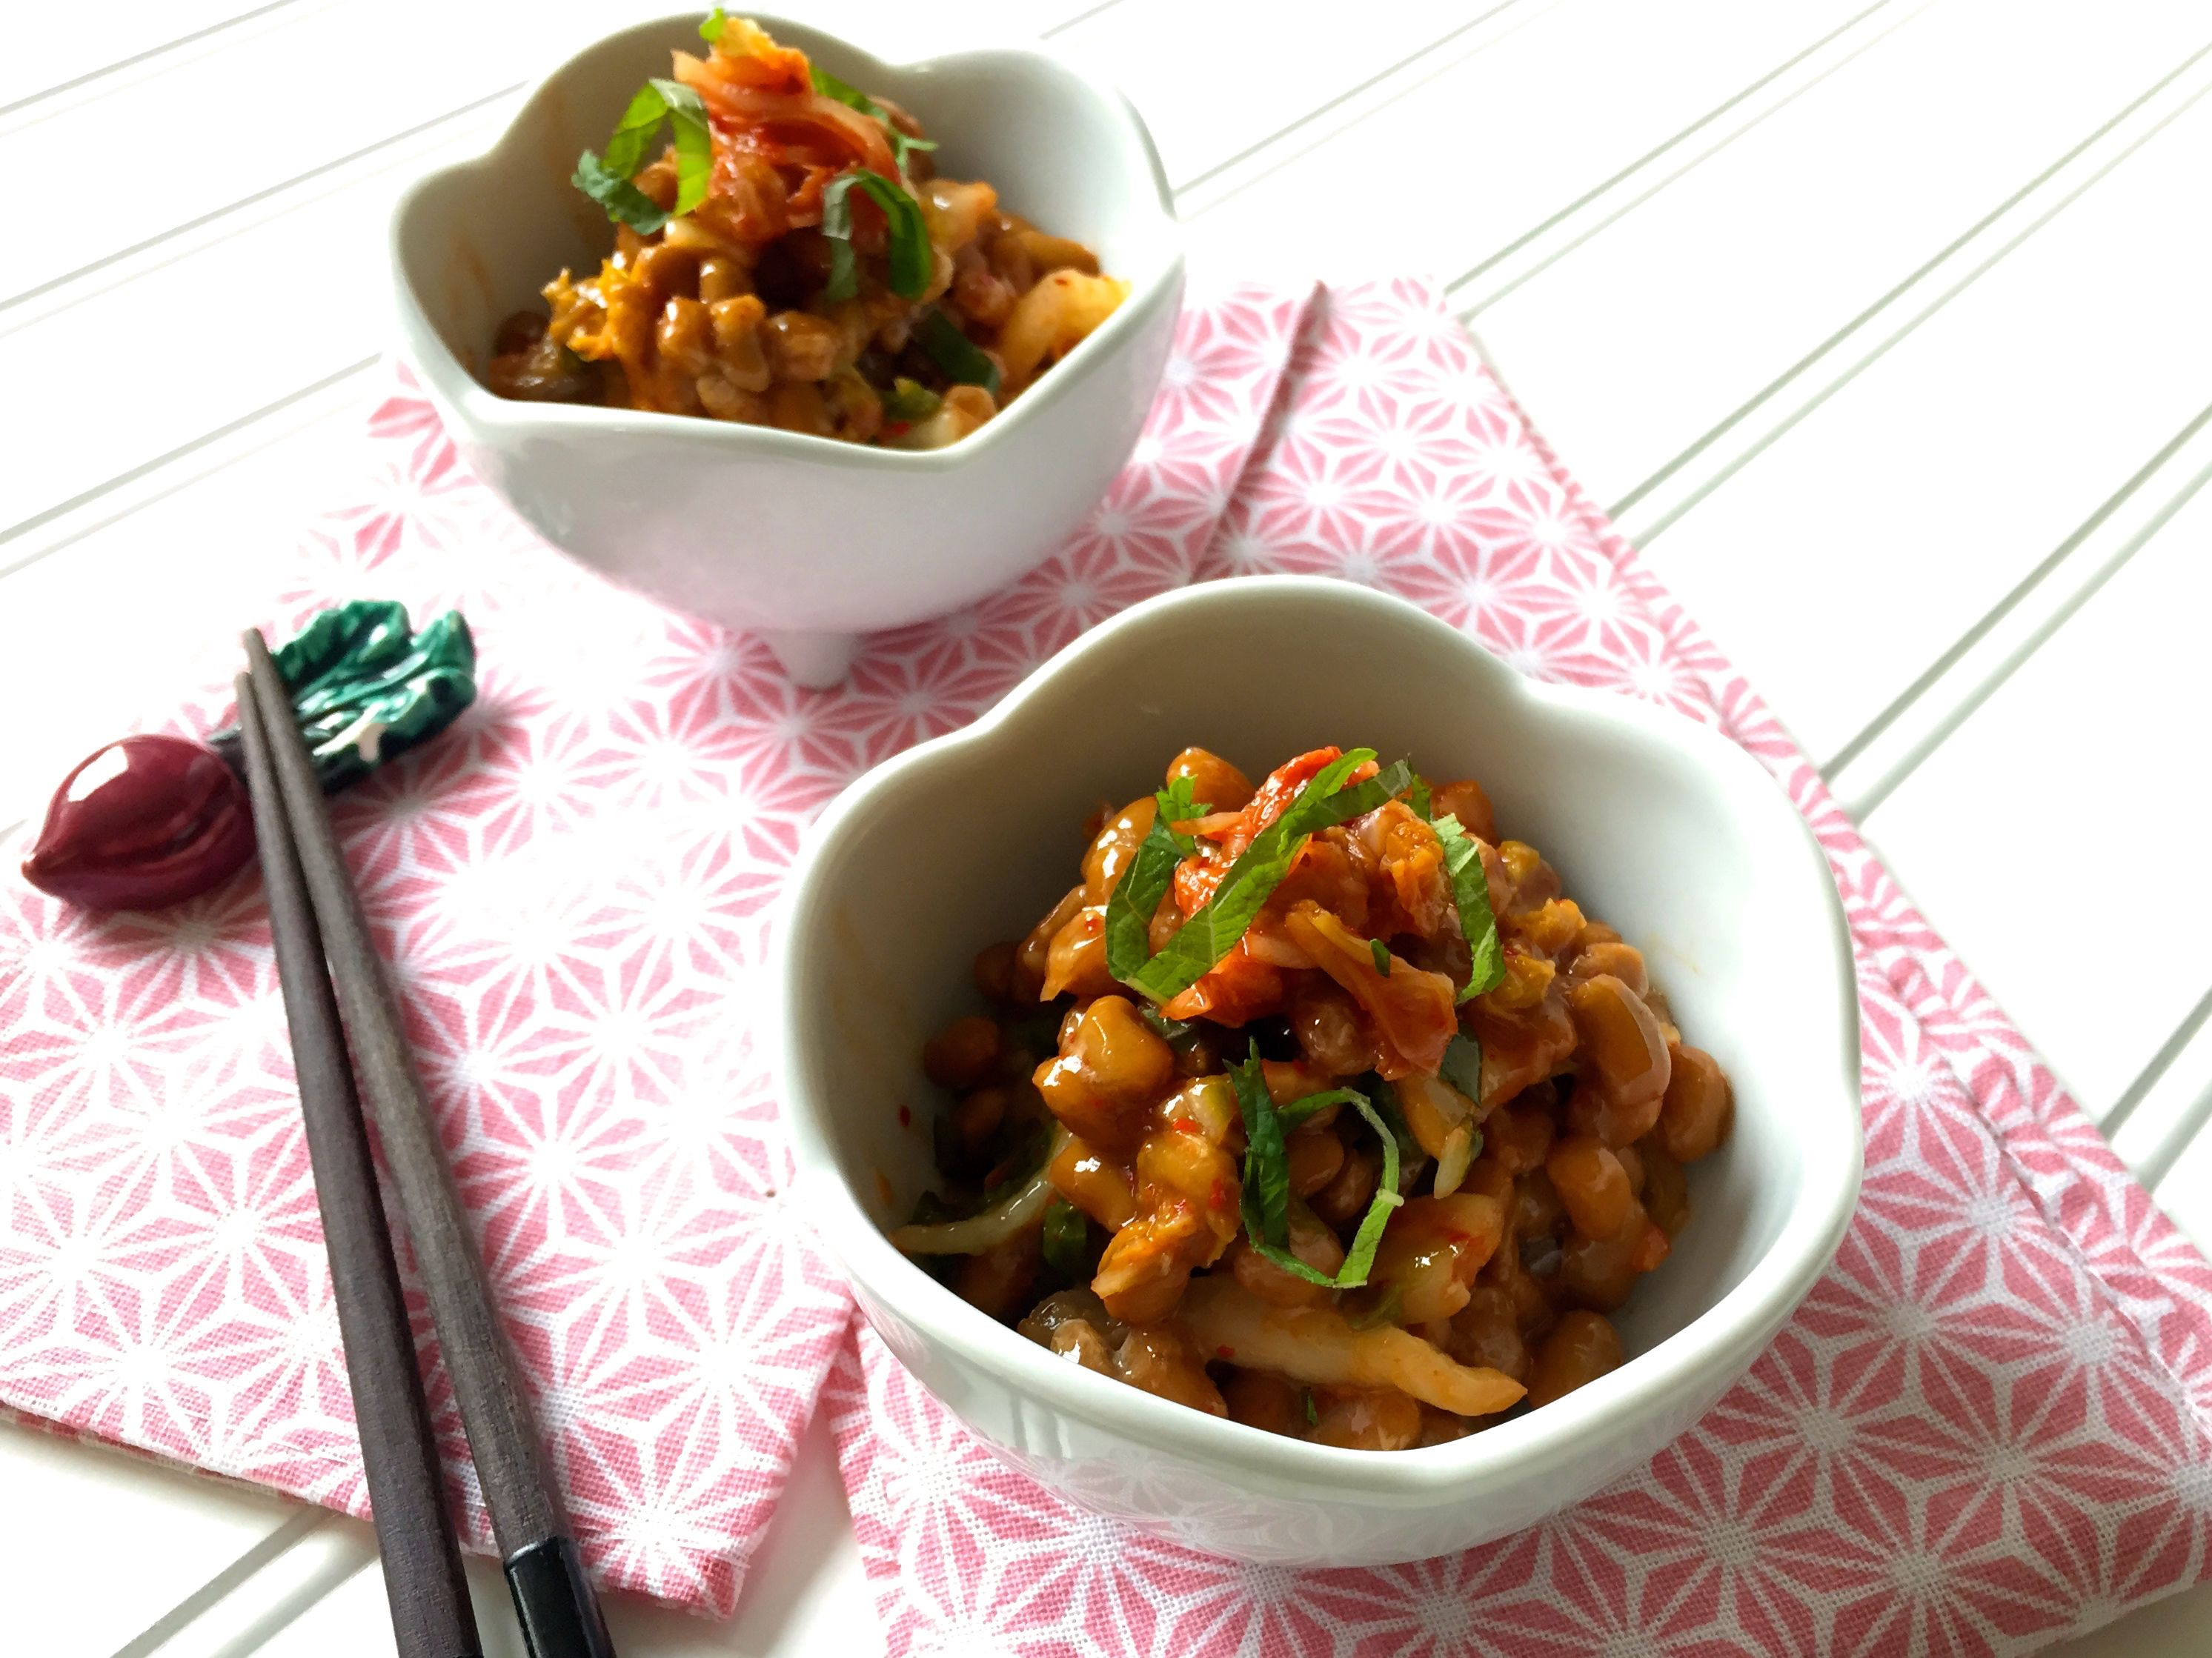 Spice up Your Dinner With Kimchi Natto (Fermented Soy Beans)